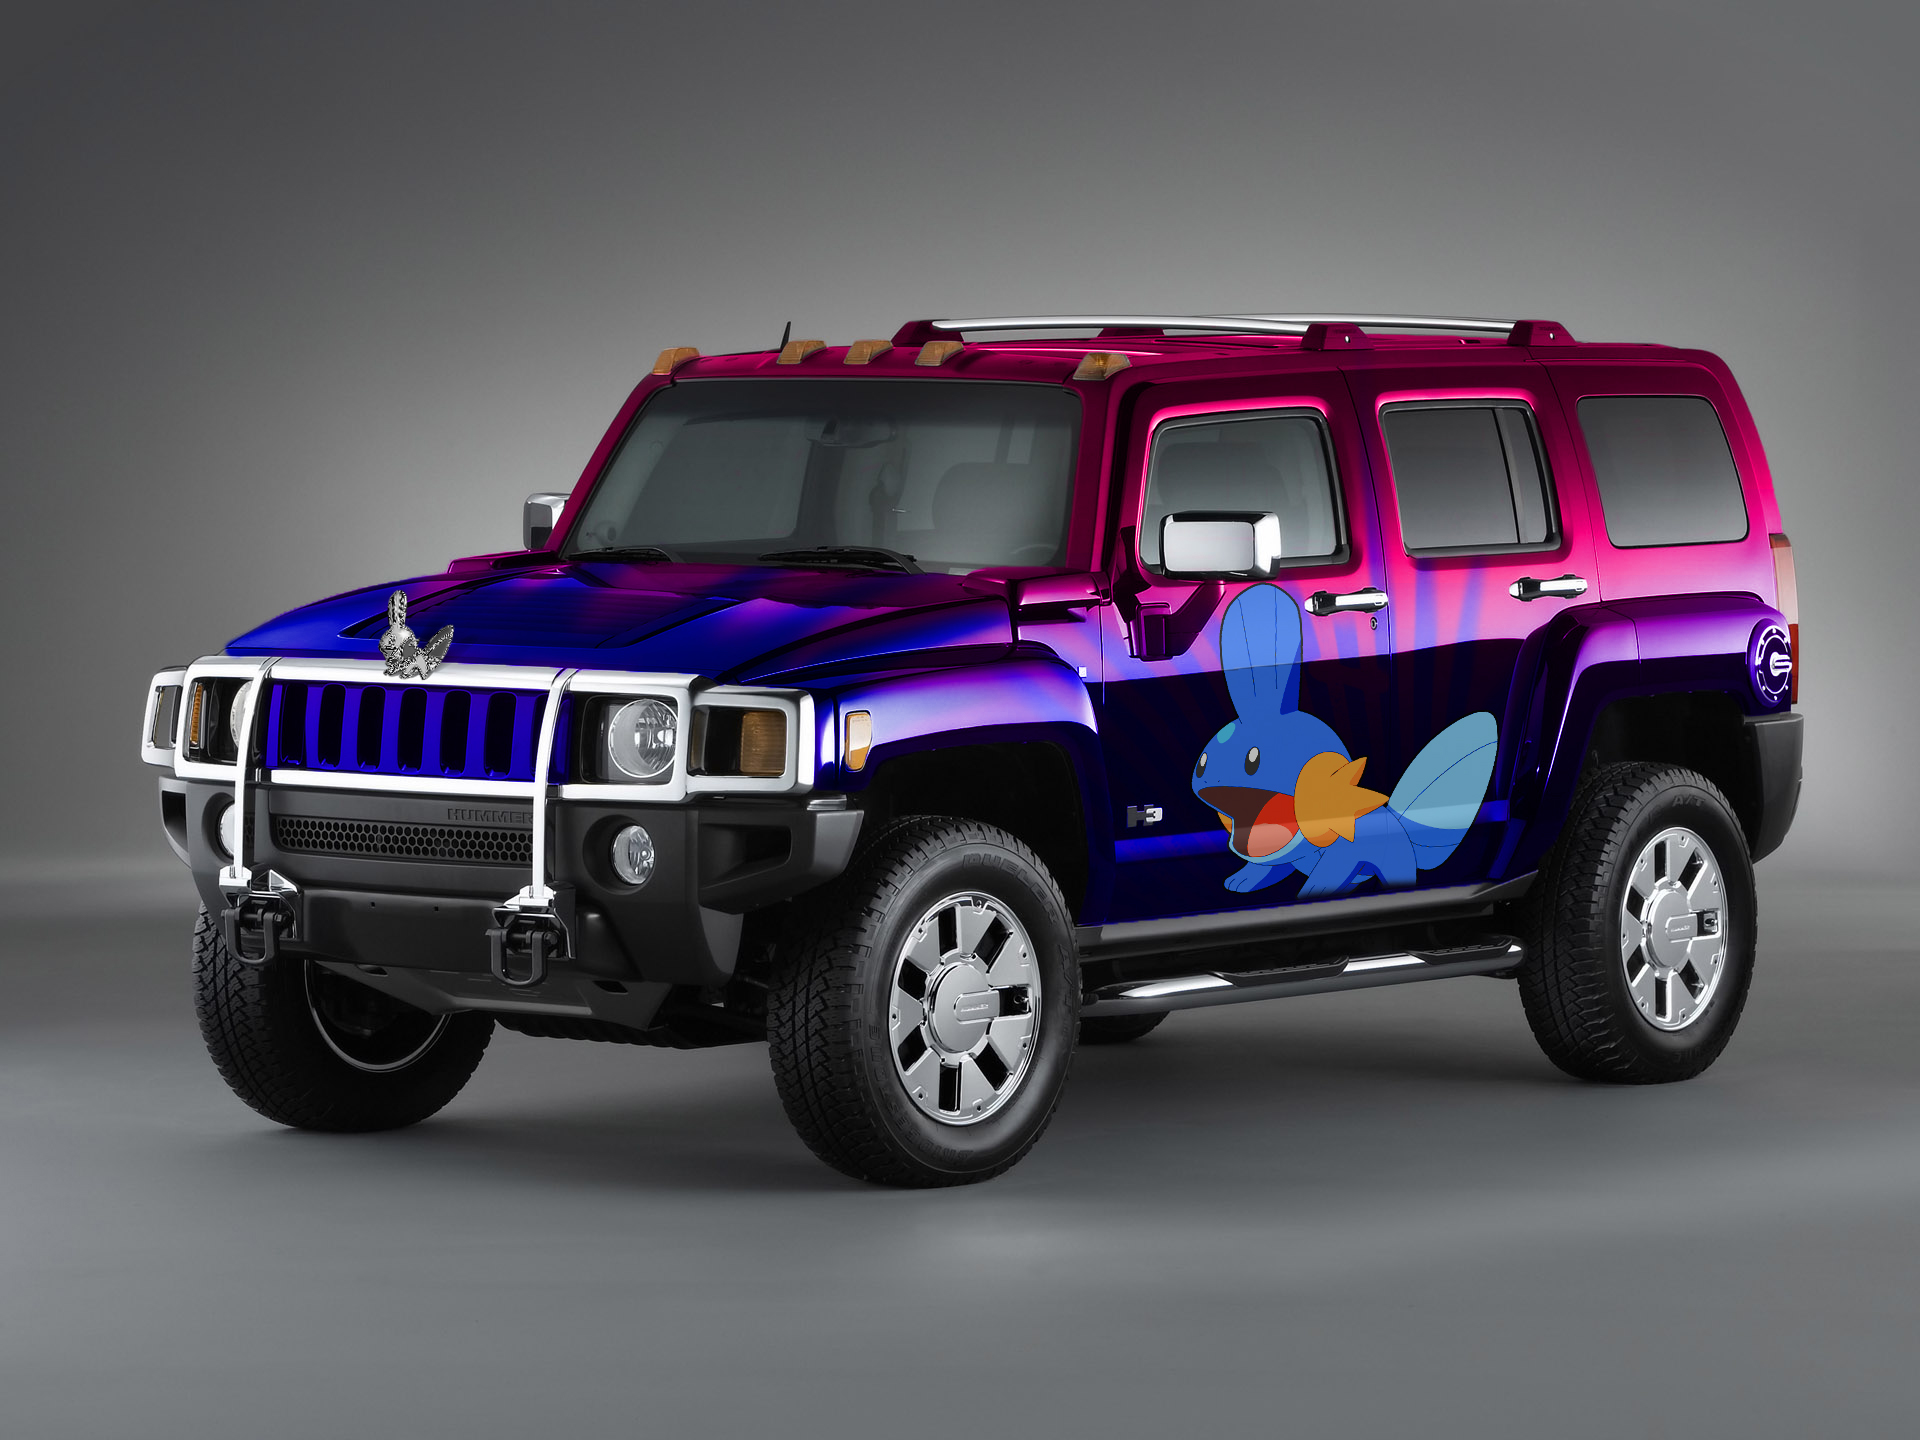 H3 Hummer Custom Car Wallpaper Desktop 7467 Wallpaper ForWallpapers 1920x1440